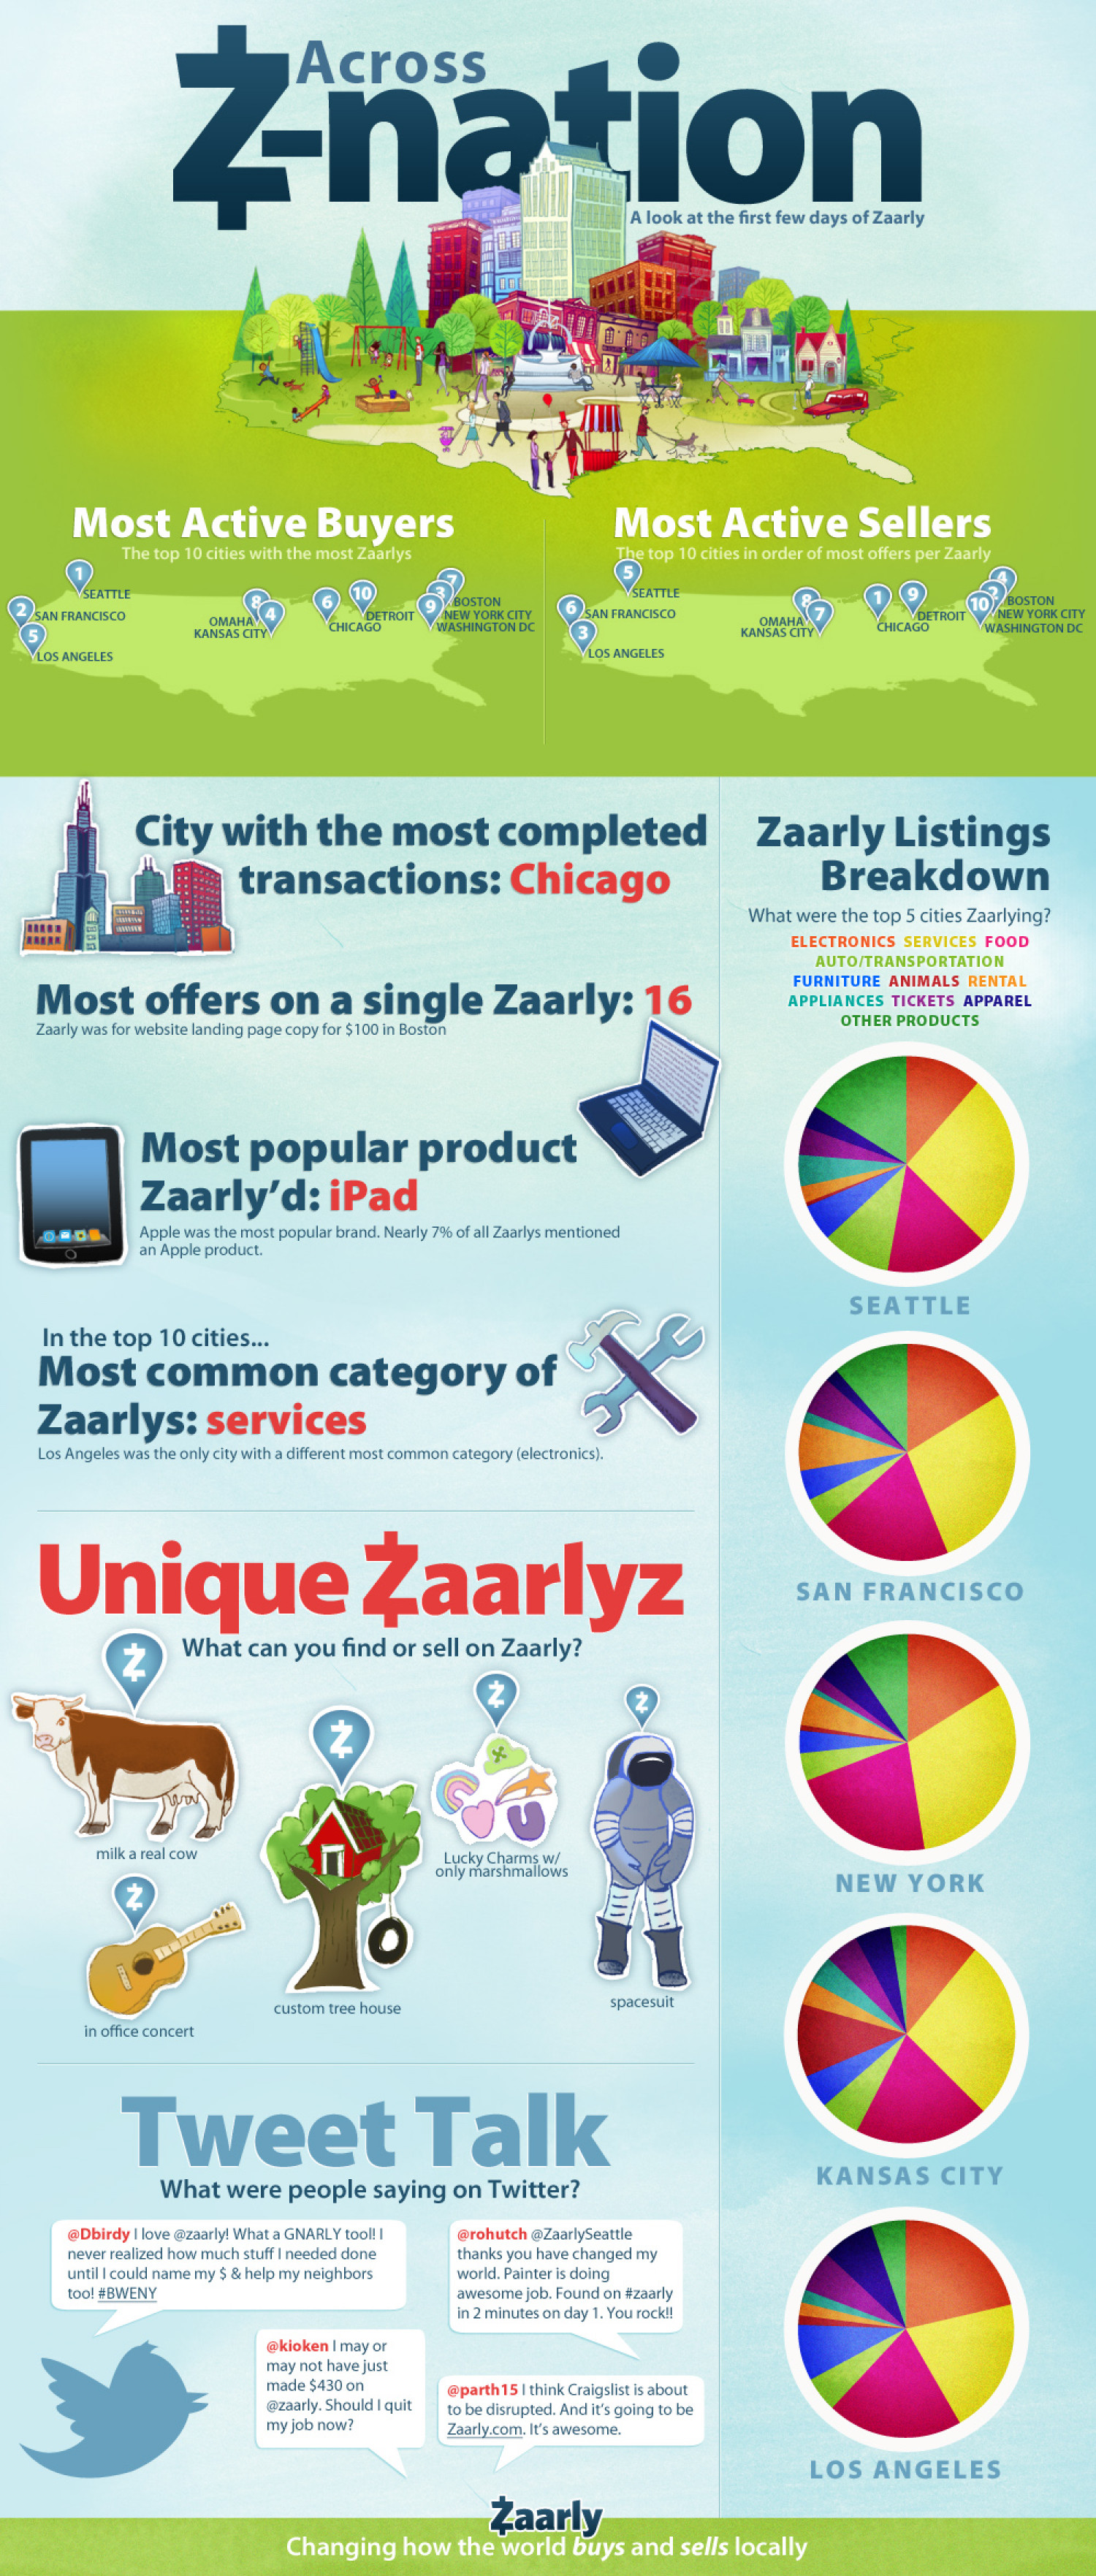 Across Z-Nation Infographic